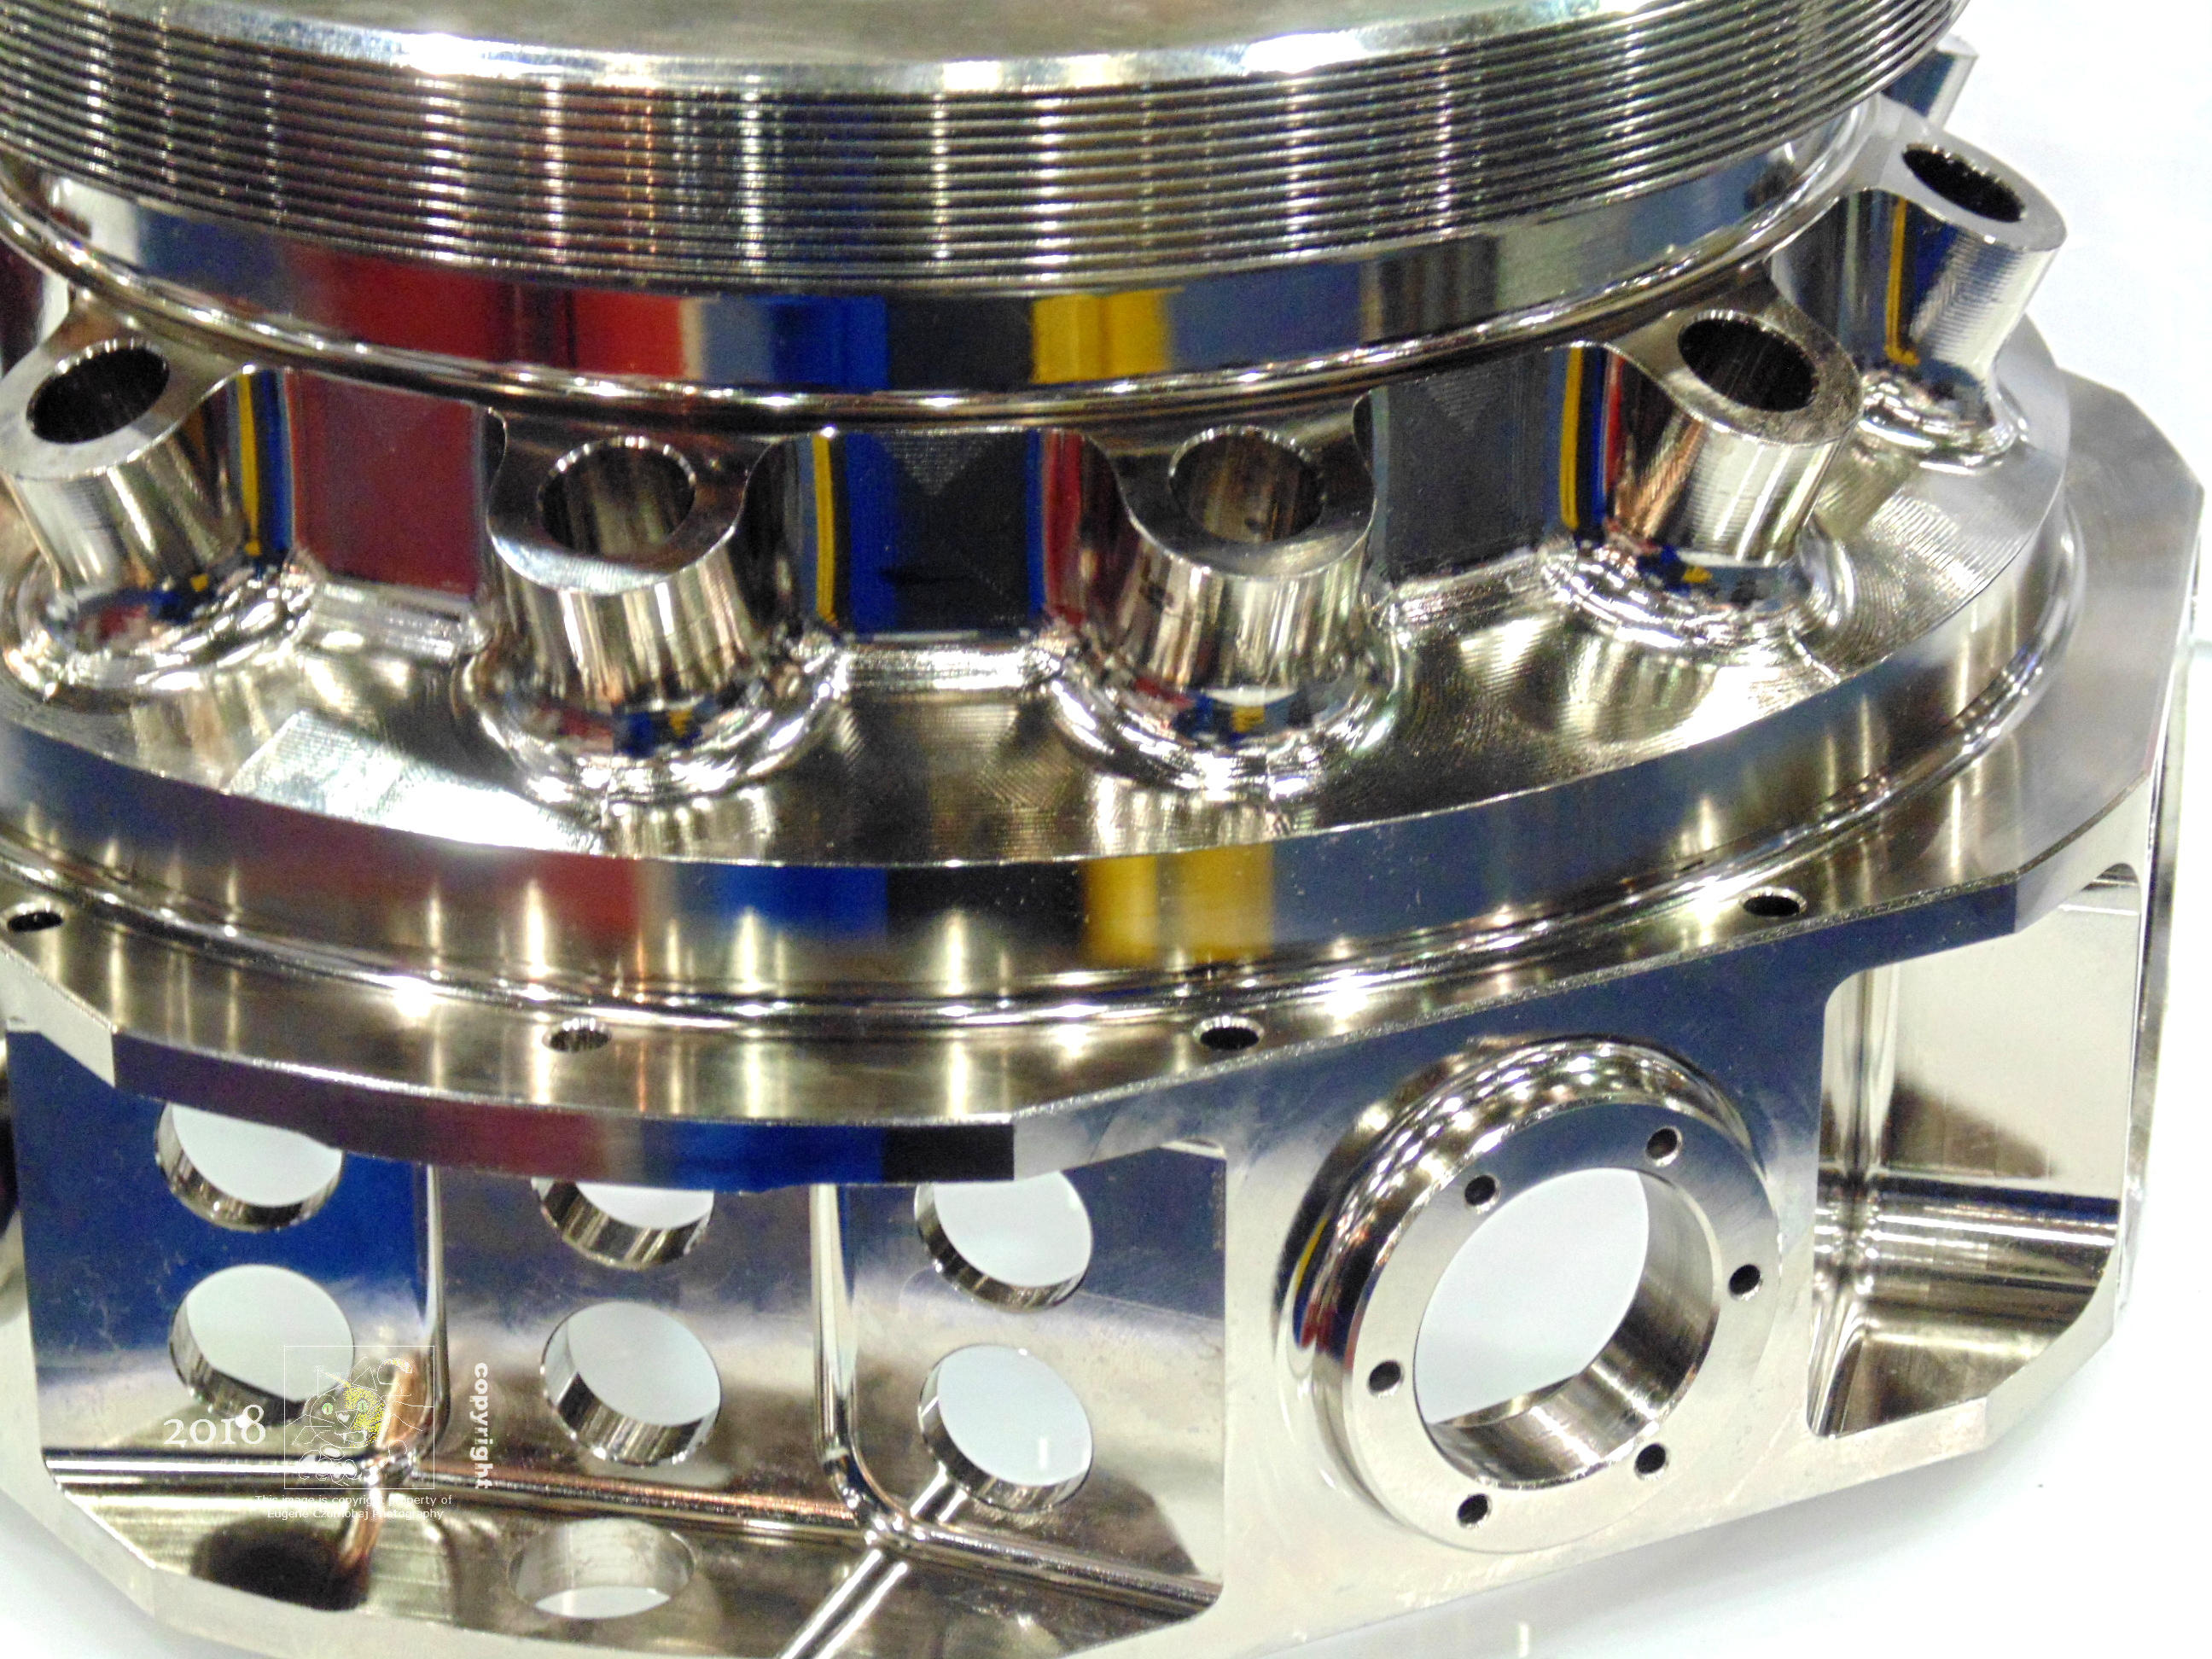 Brilliant machined stainless part exhibit piece made to impress attendees at 2016 SME Montreal Advanced Manufacturing Show.